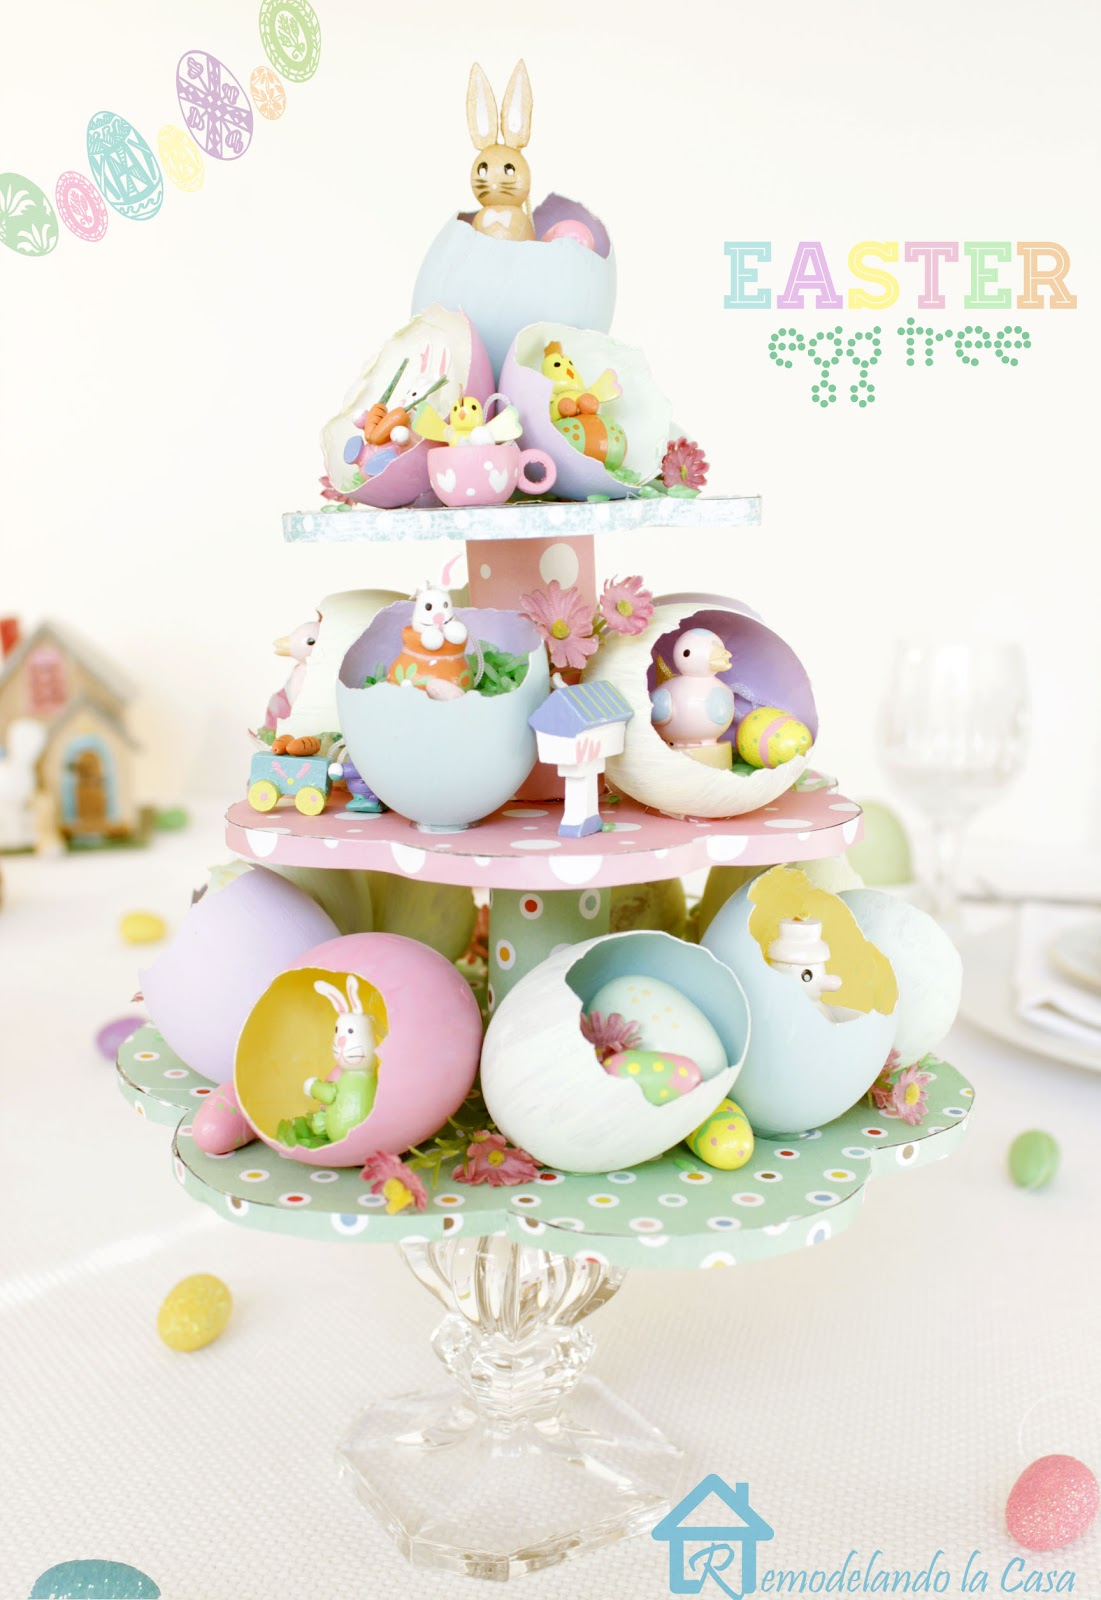 painted egg shells are used to create an Easter egg tree centerpiece